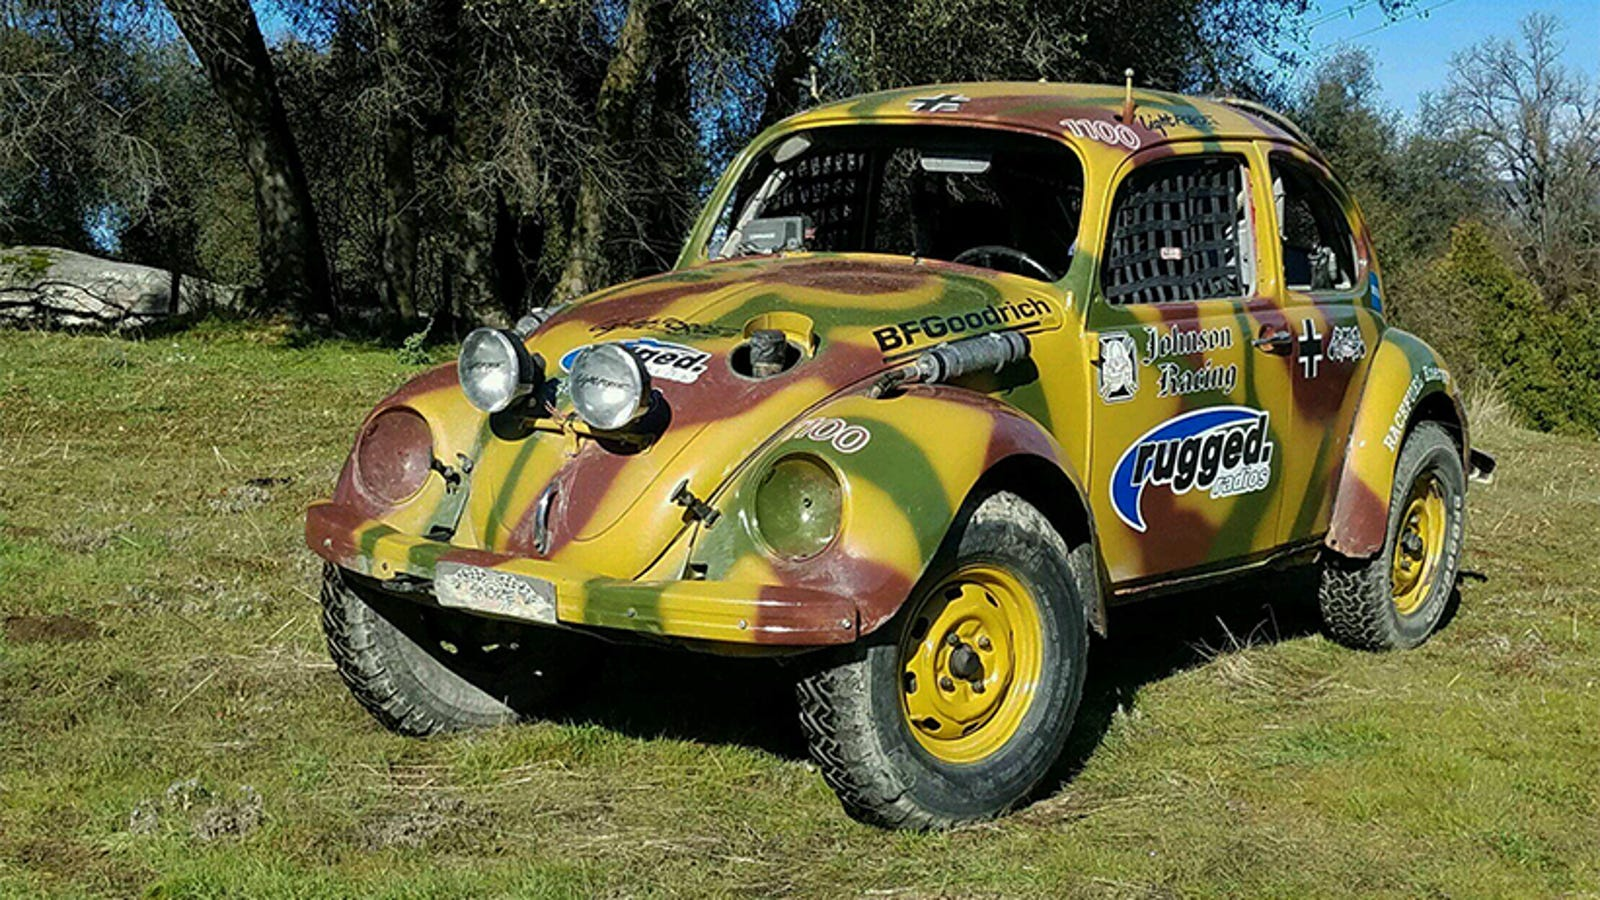 We're Finally Going To Try Off-Road Racing An Old VW Beetle In The Mint 400